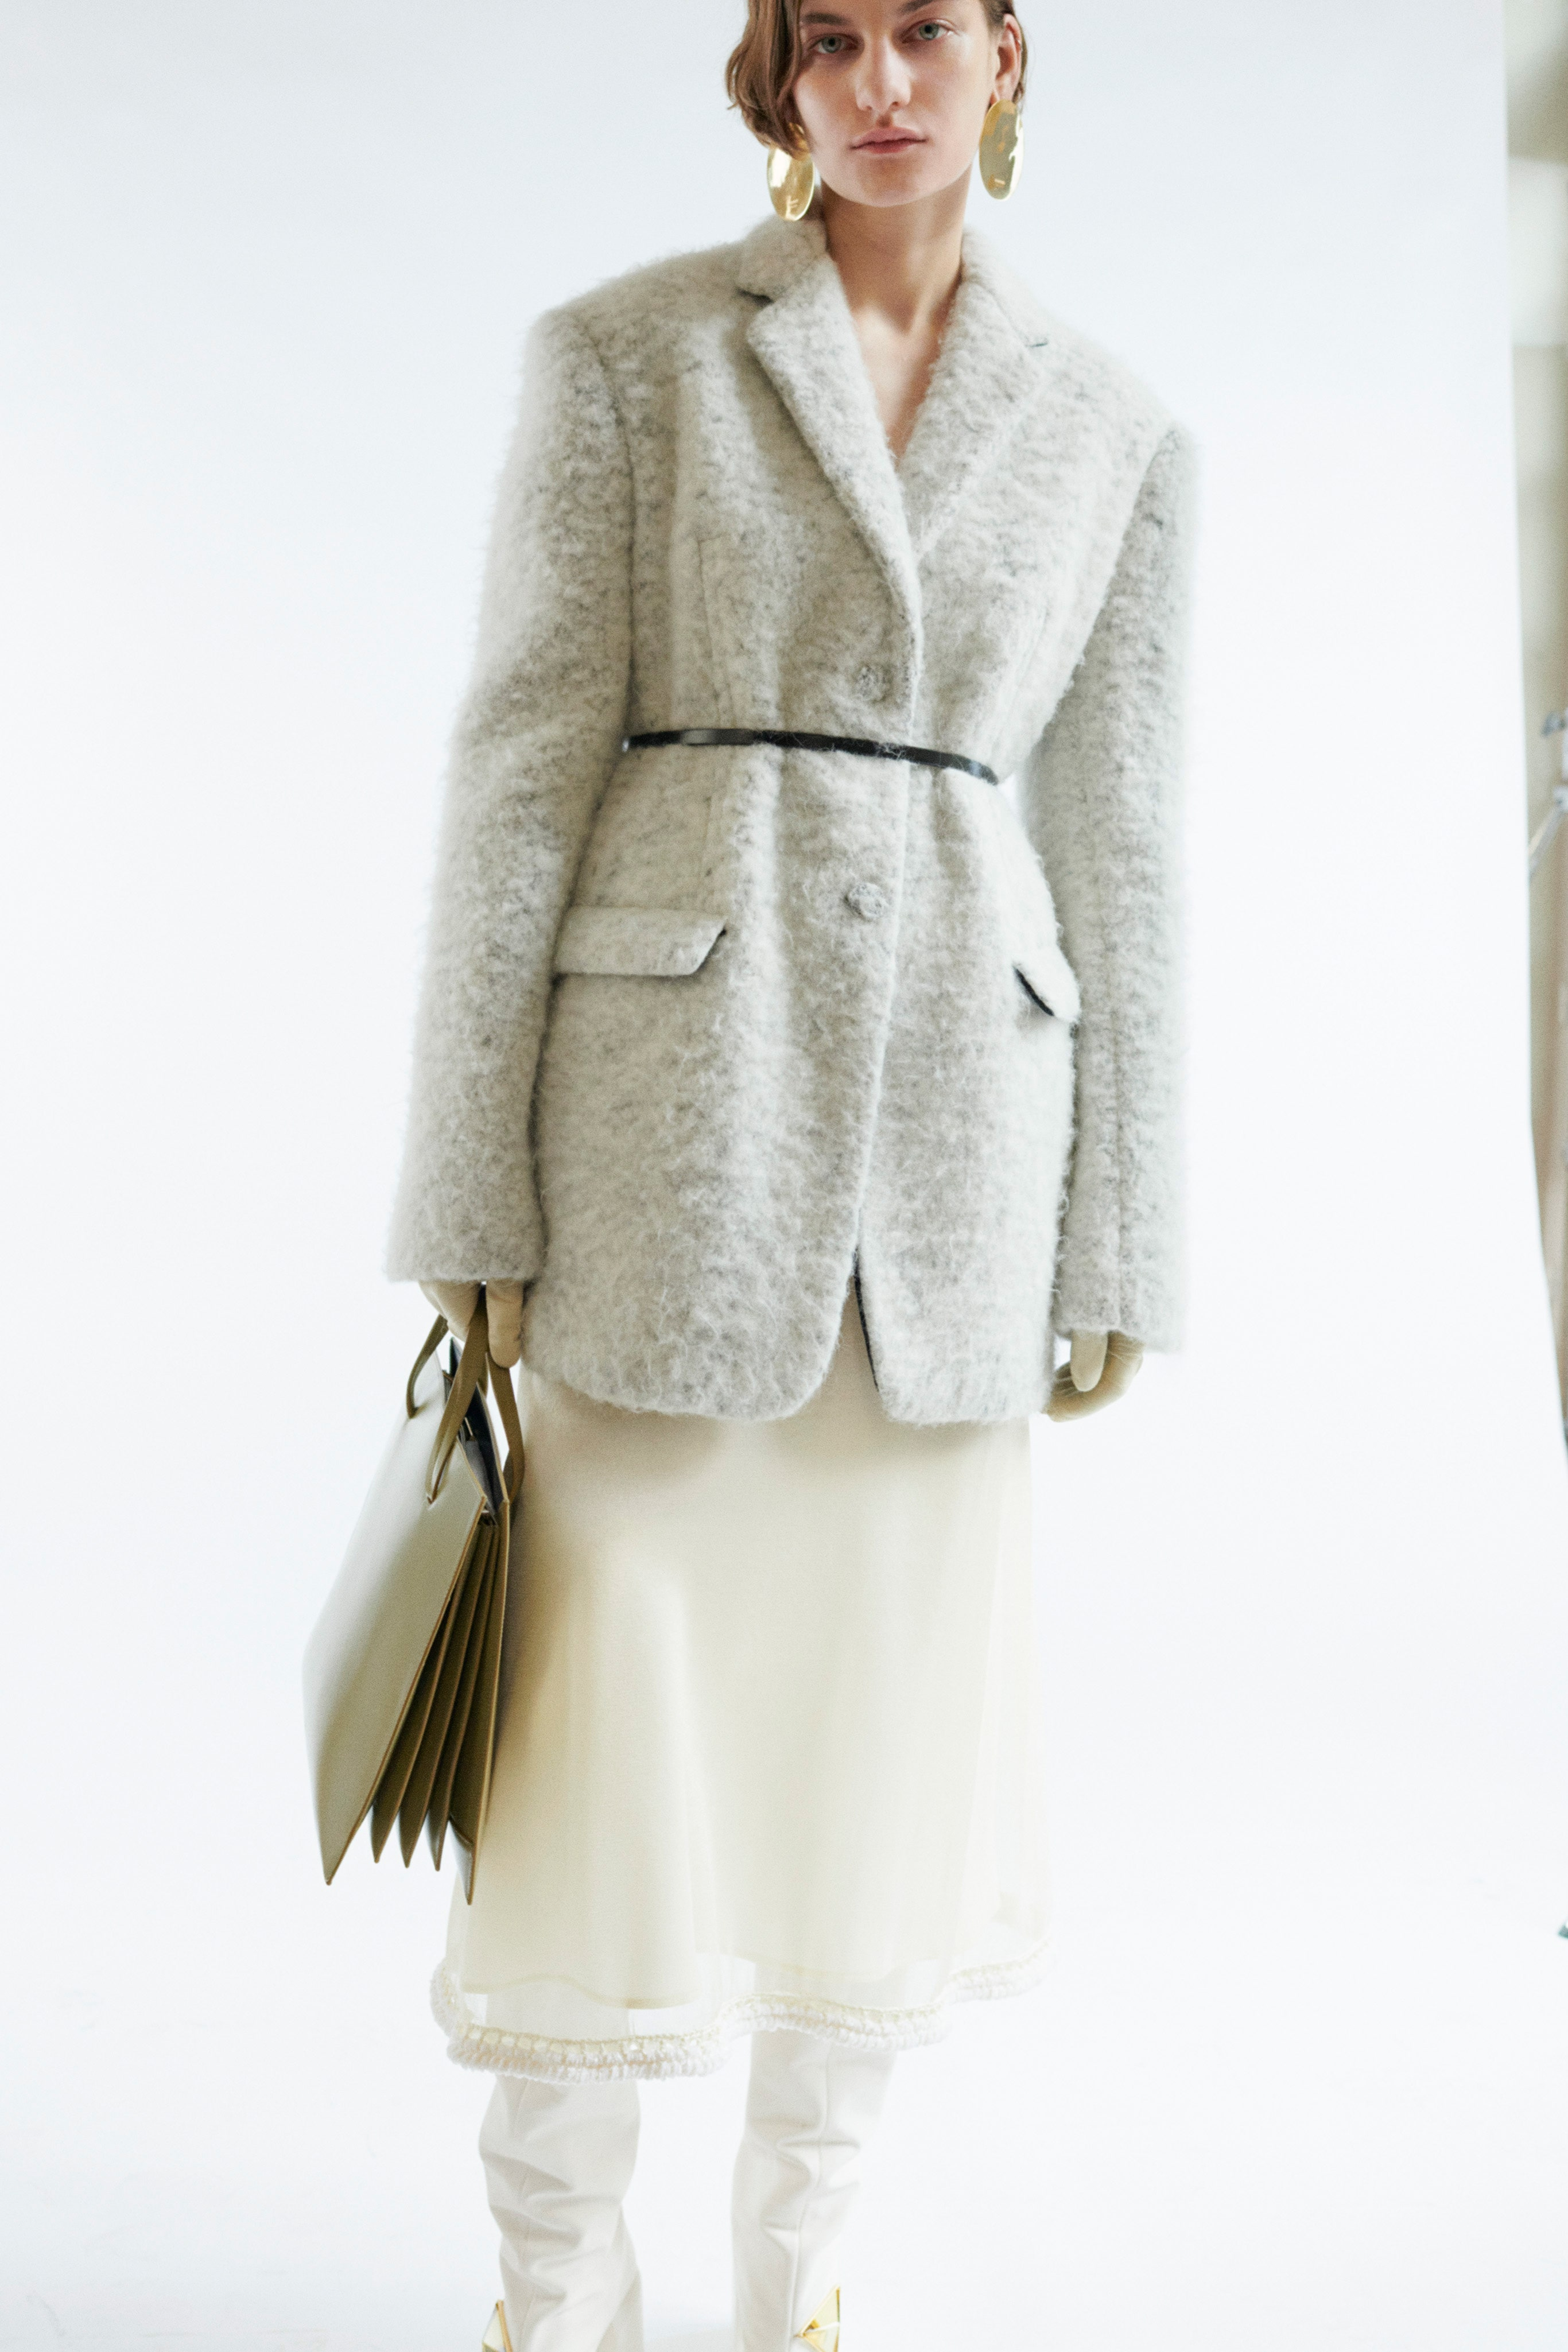 For walks in the fresh air: A seasonal collection of Jil Sander arrived at Asthik (photo 34)